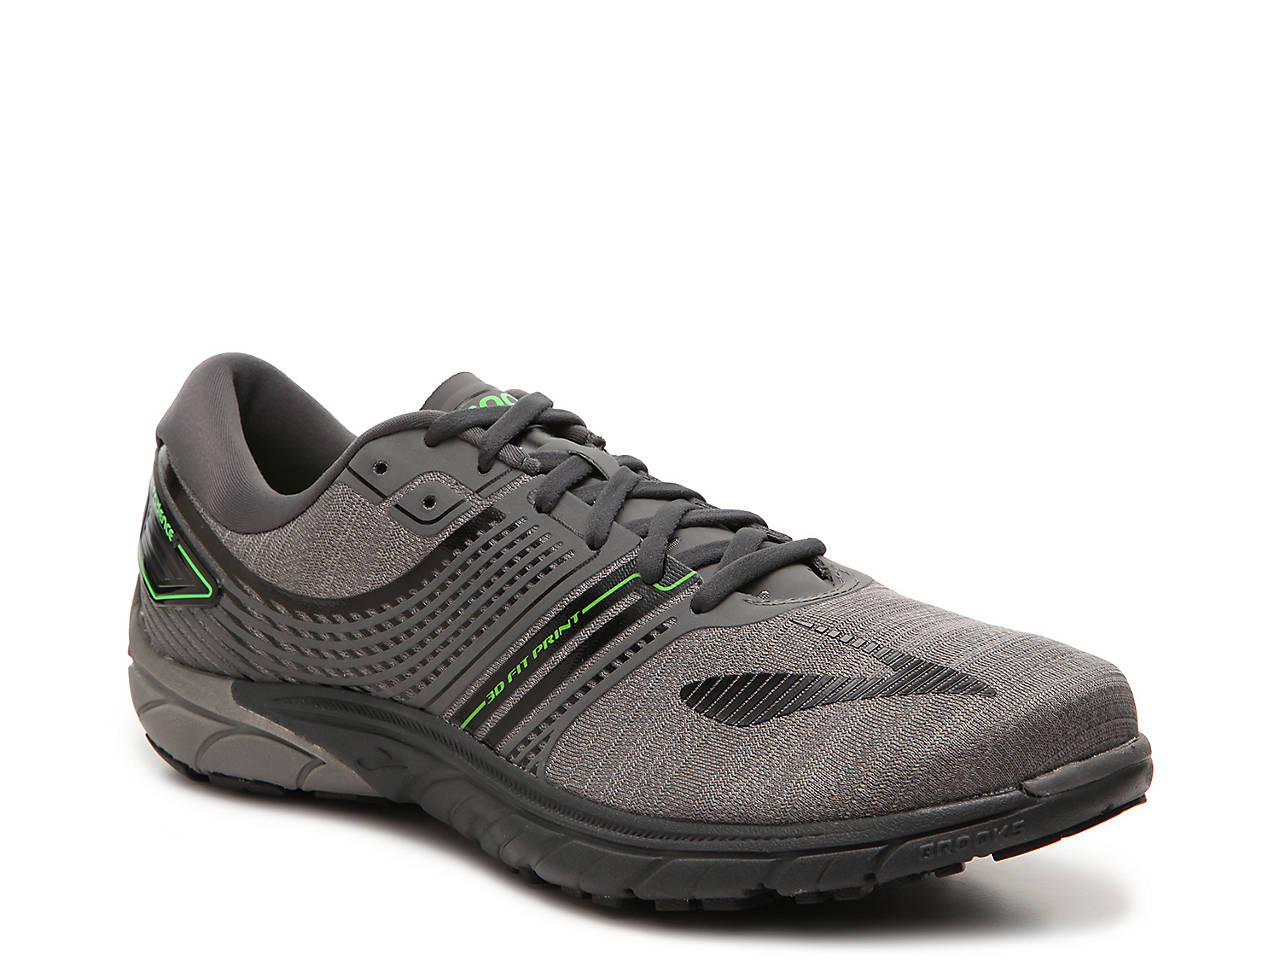 aafe8f9da00 Brooks Pure Cadence 6 Lightweight Running Shoe - Men s Men s Shoes